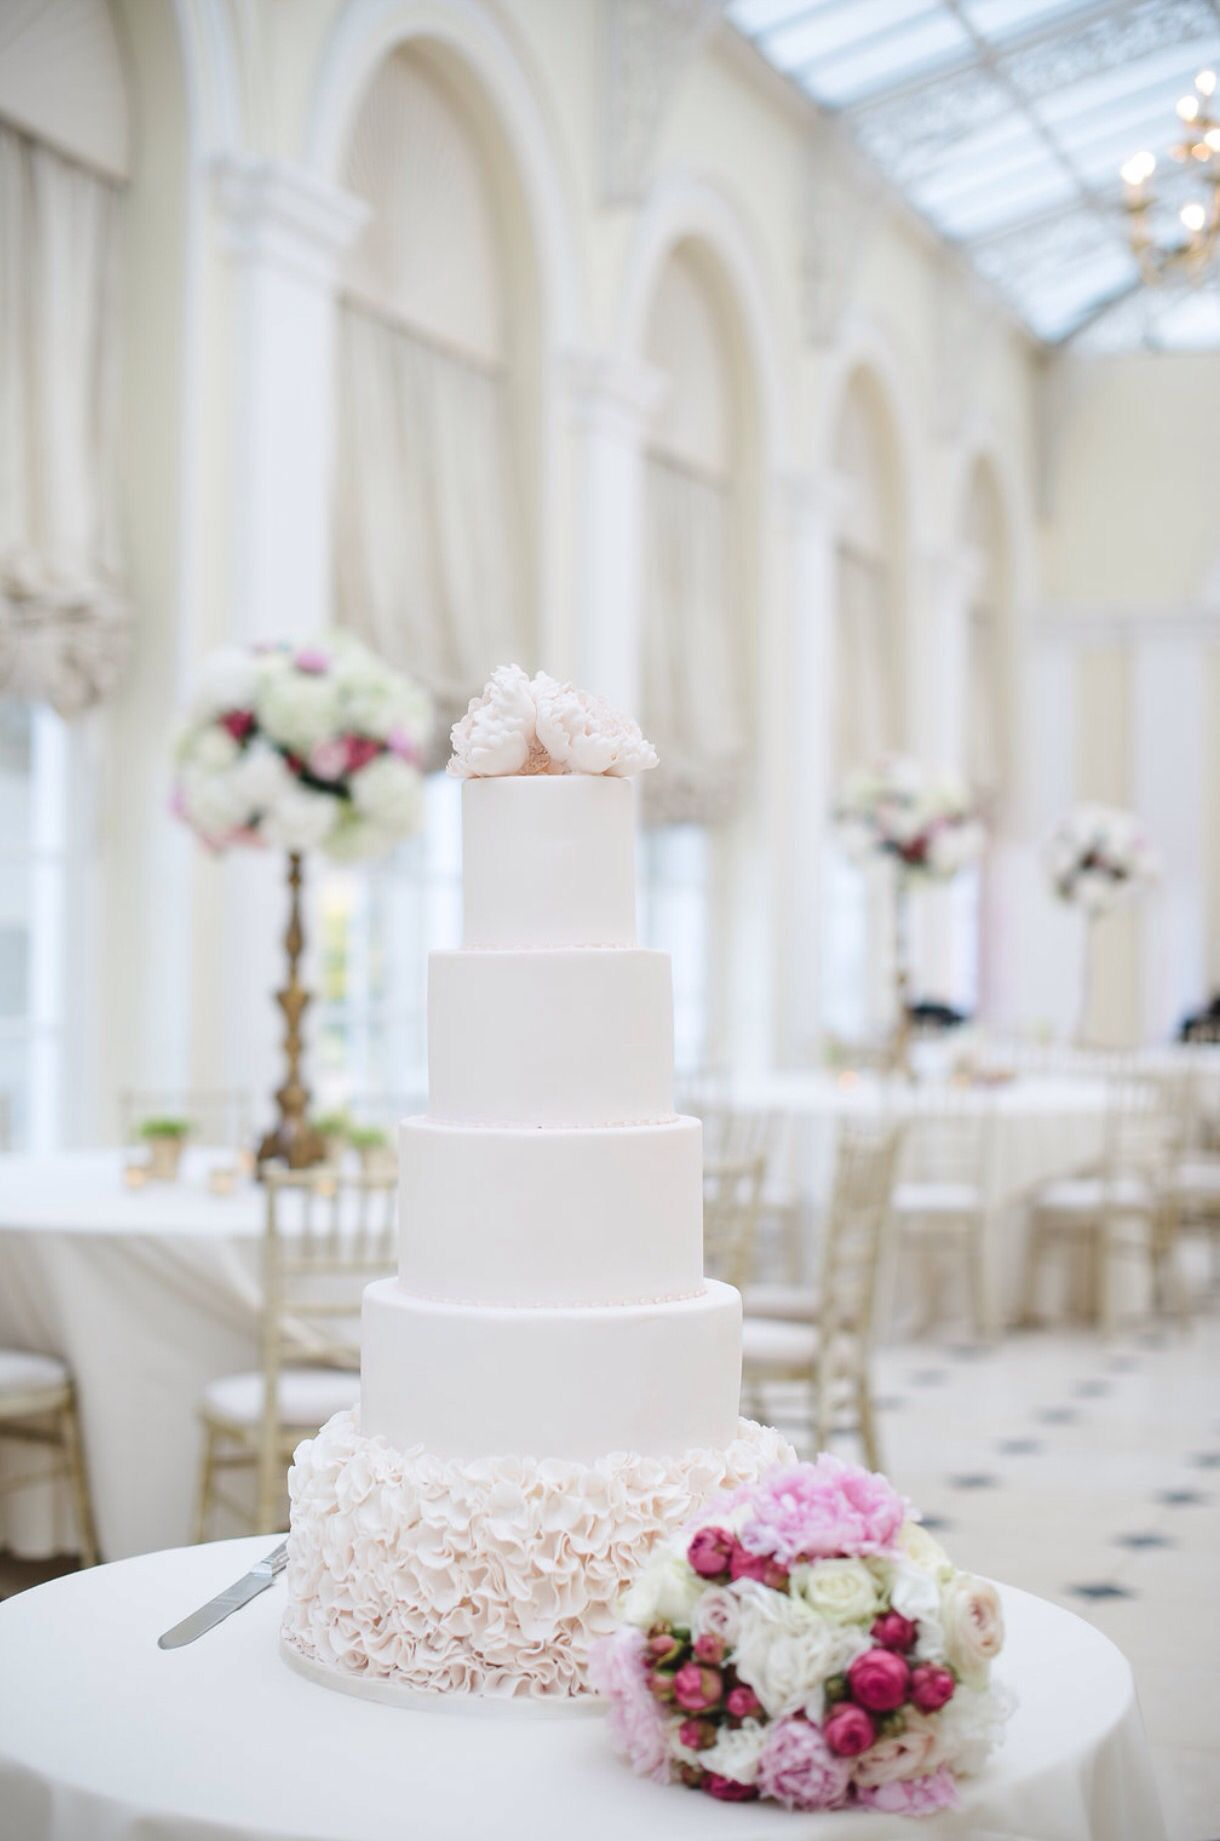 Blenheim Palace Wedding  Wedding Planner: Planned for Perfection Photographer: Weddings by Nicola & Glen Flowers: Joanna Carter Flowers Cakes: Petit Gateau www.plannedforperfection.co.uk